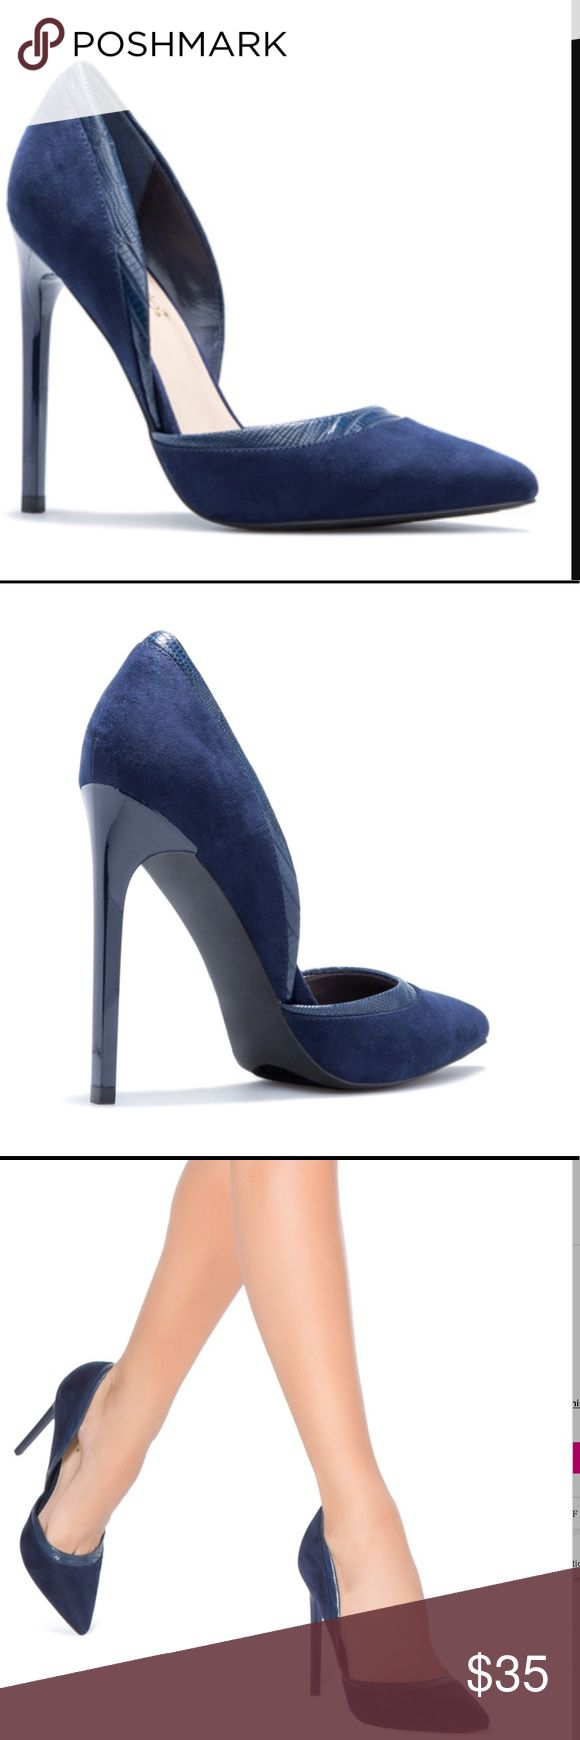 *BRAND NEW* Shoedazzle Navy Classic Pump Faux Velvet and leather classic pump. Elevates sophistication for any outfit, can go from day to night. BRAND NEW!!! Shoe Dazzle Shoes Heels